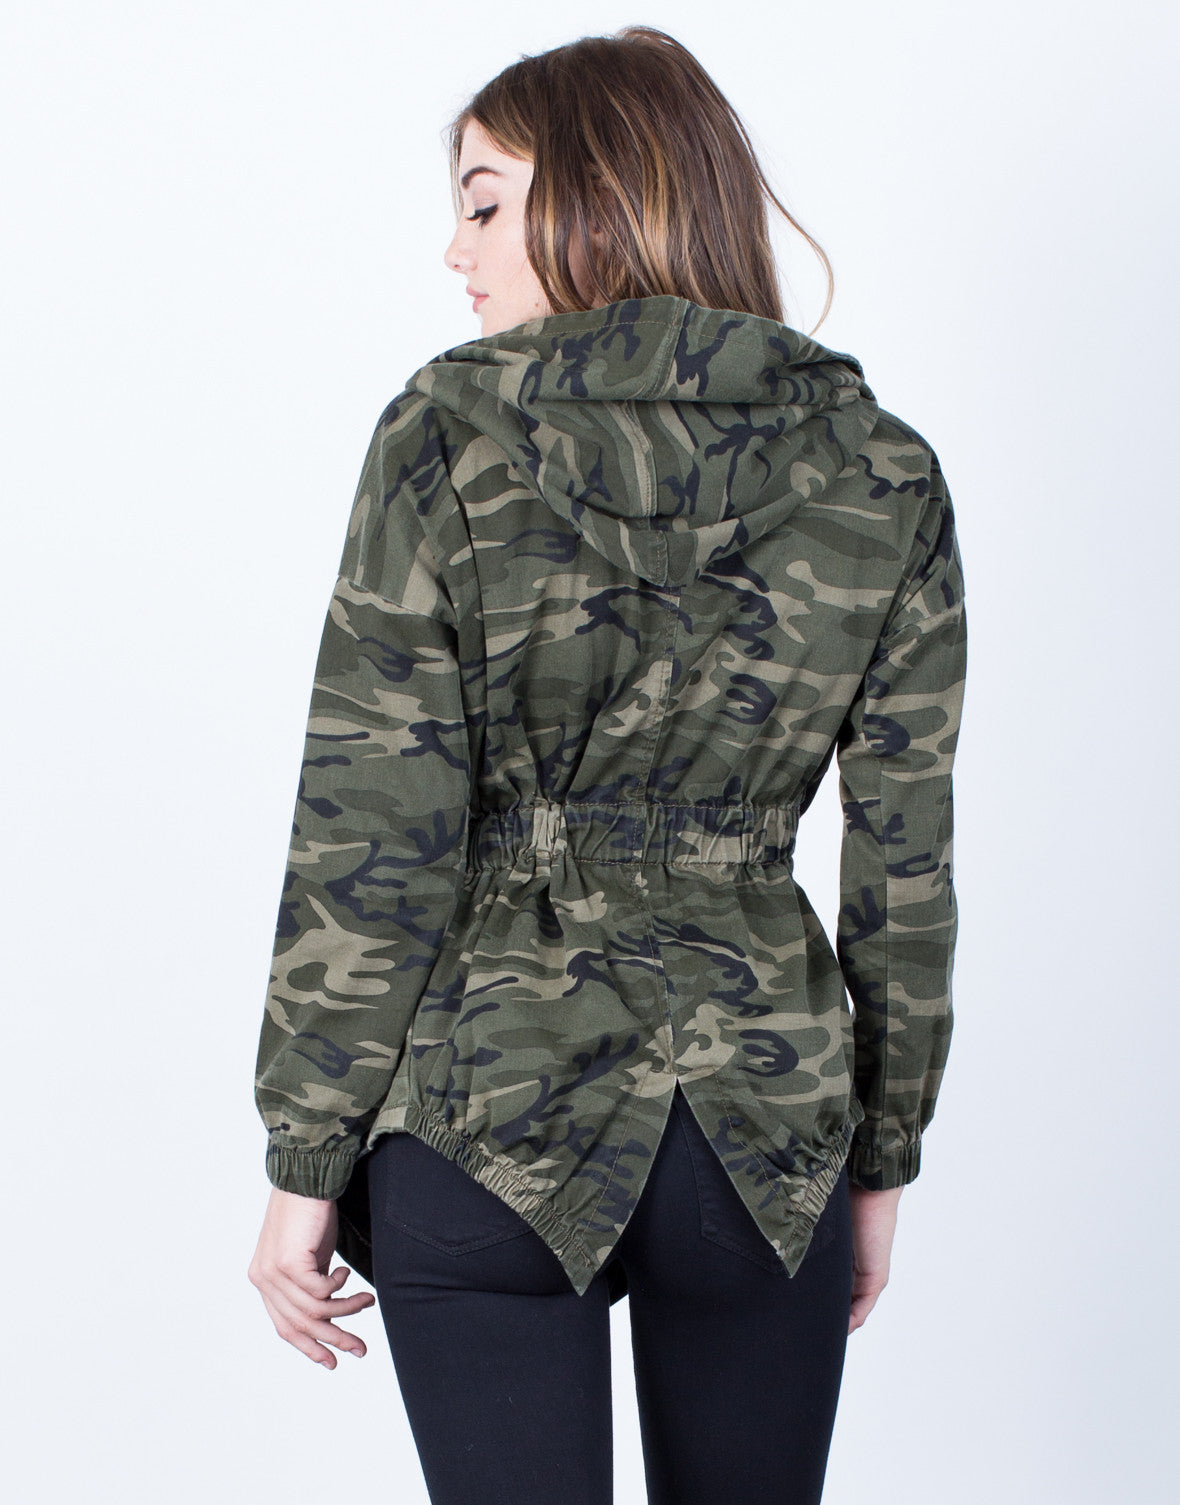 Back View of Hooded Waist Tie Camo Jacket